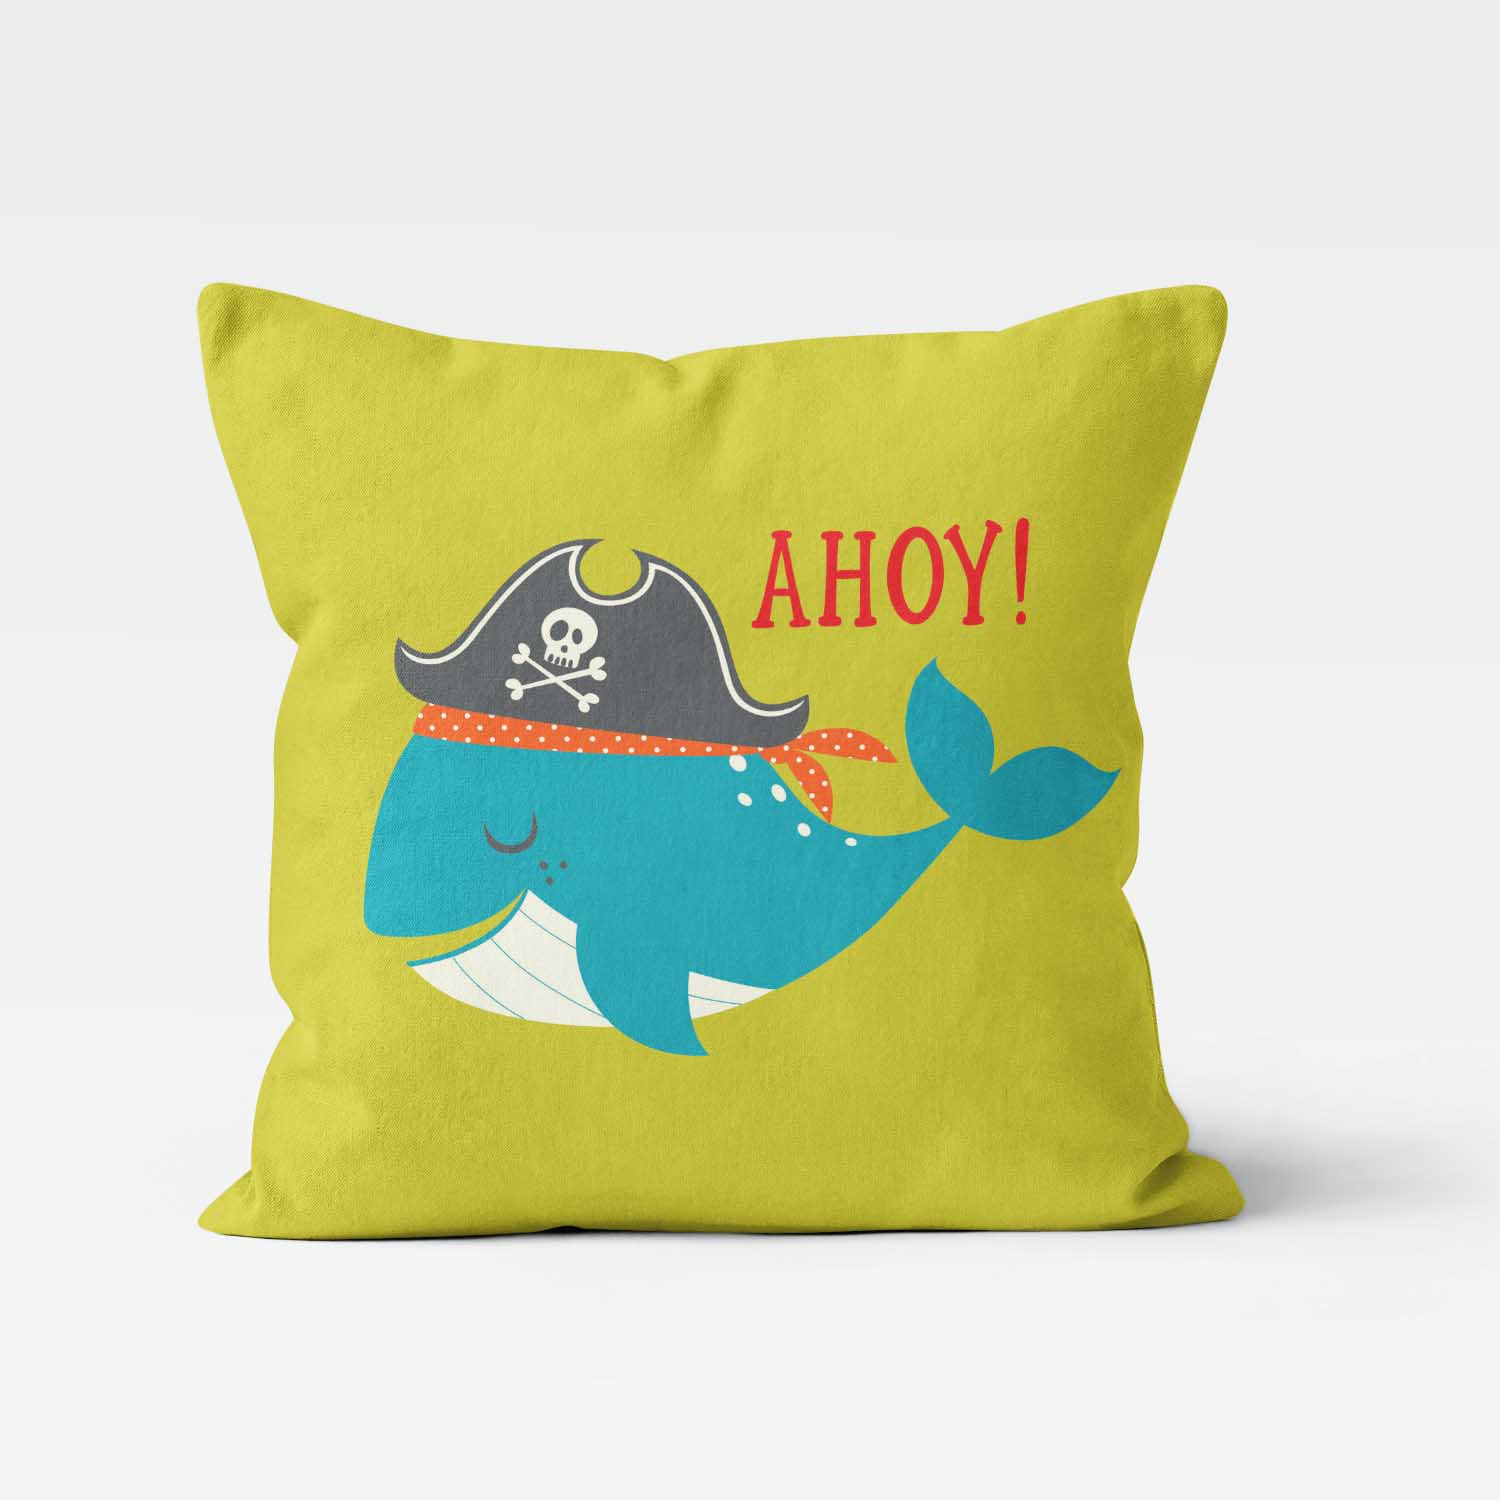 PKTP00006-AhoyMateyPirateAdventure-PILLOW3 Ahoy Matey! Pirate Adventure Whale Boys Kids Accent Throw Pillow Room Decor Accessories by Pickleberry Kids